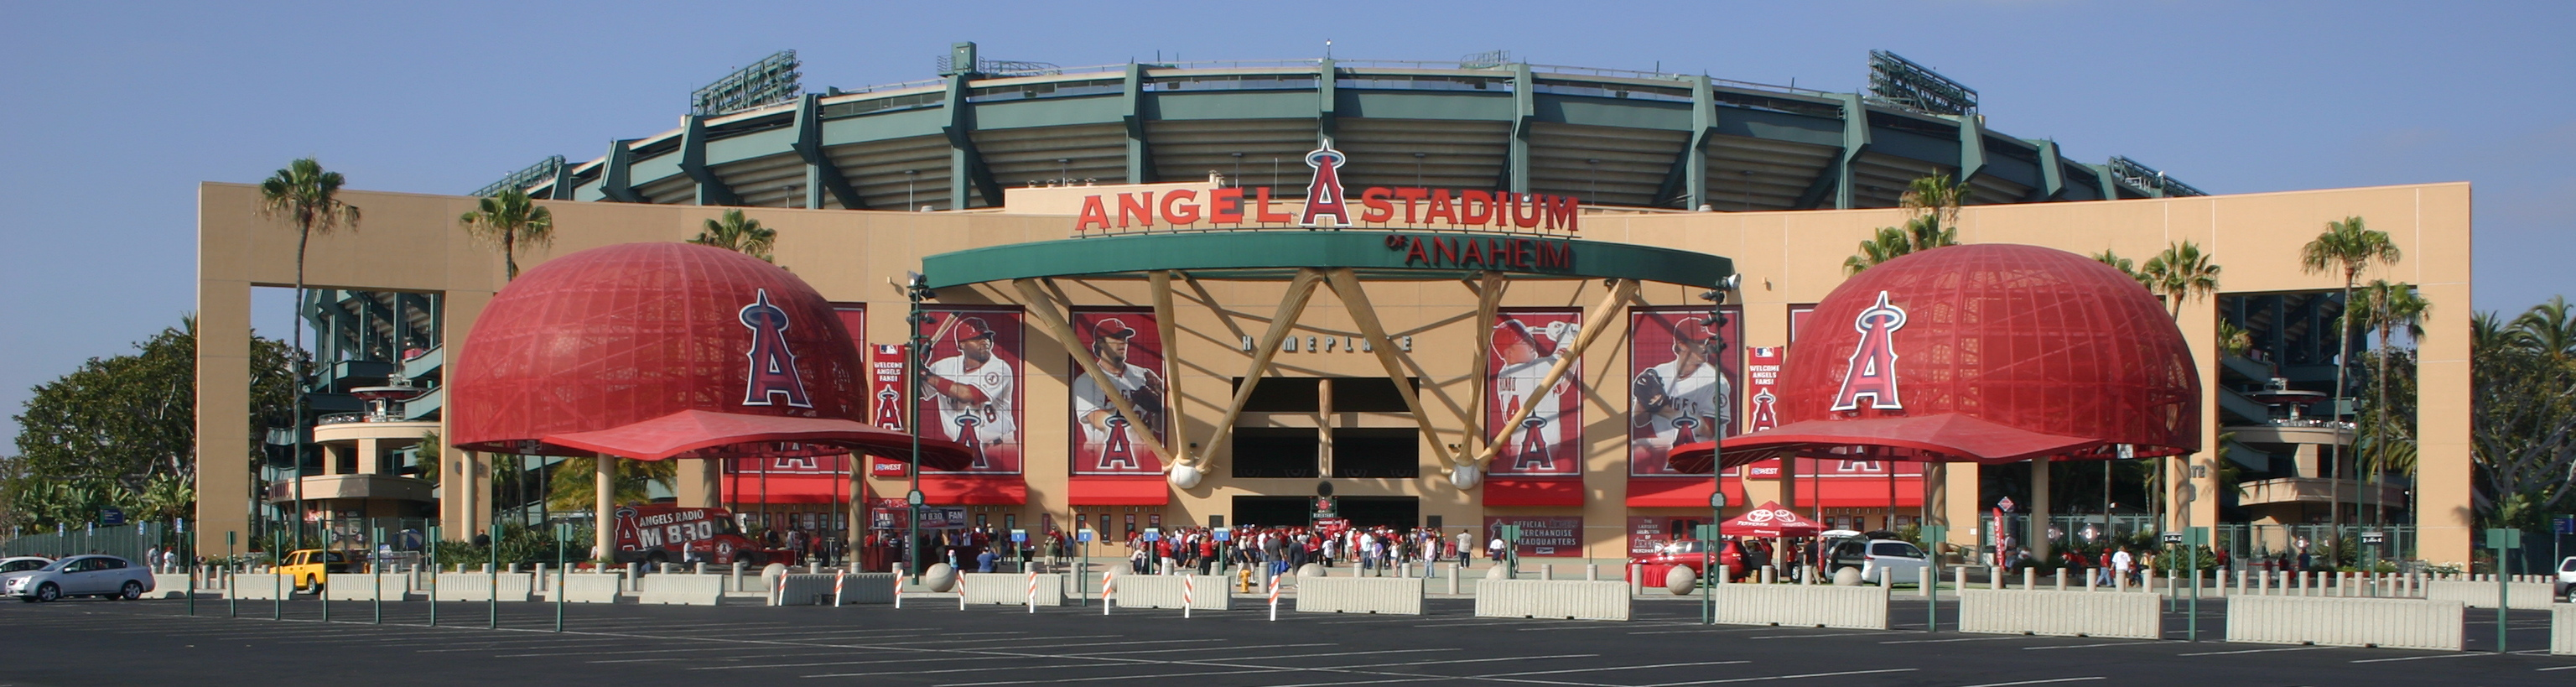 Angel Stadium,West Coast Baseball Tour,Baseball Road Trip